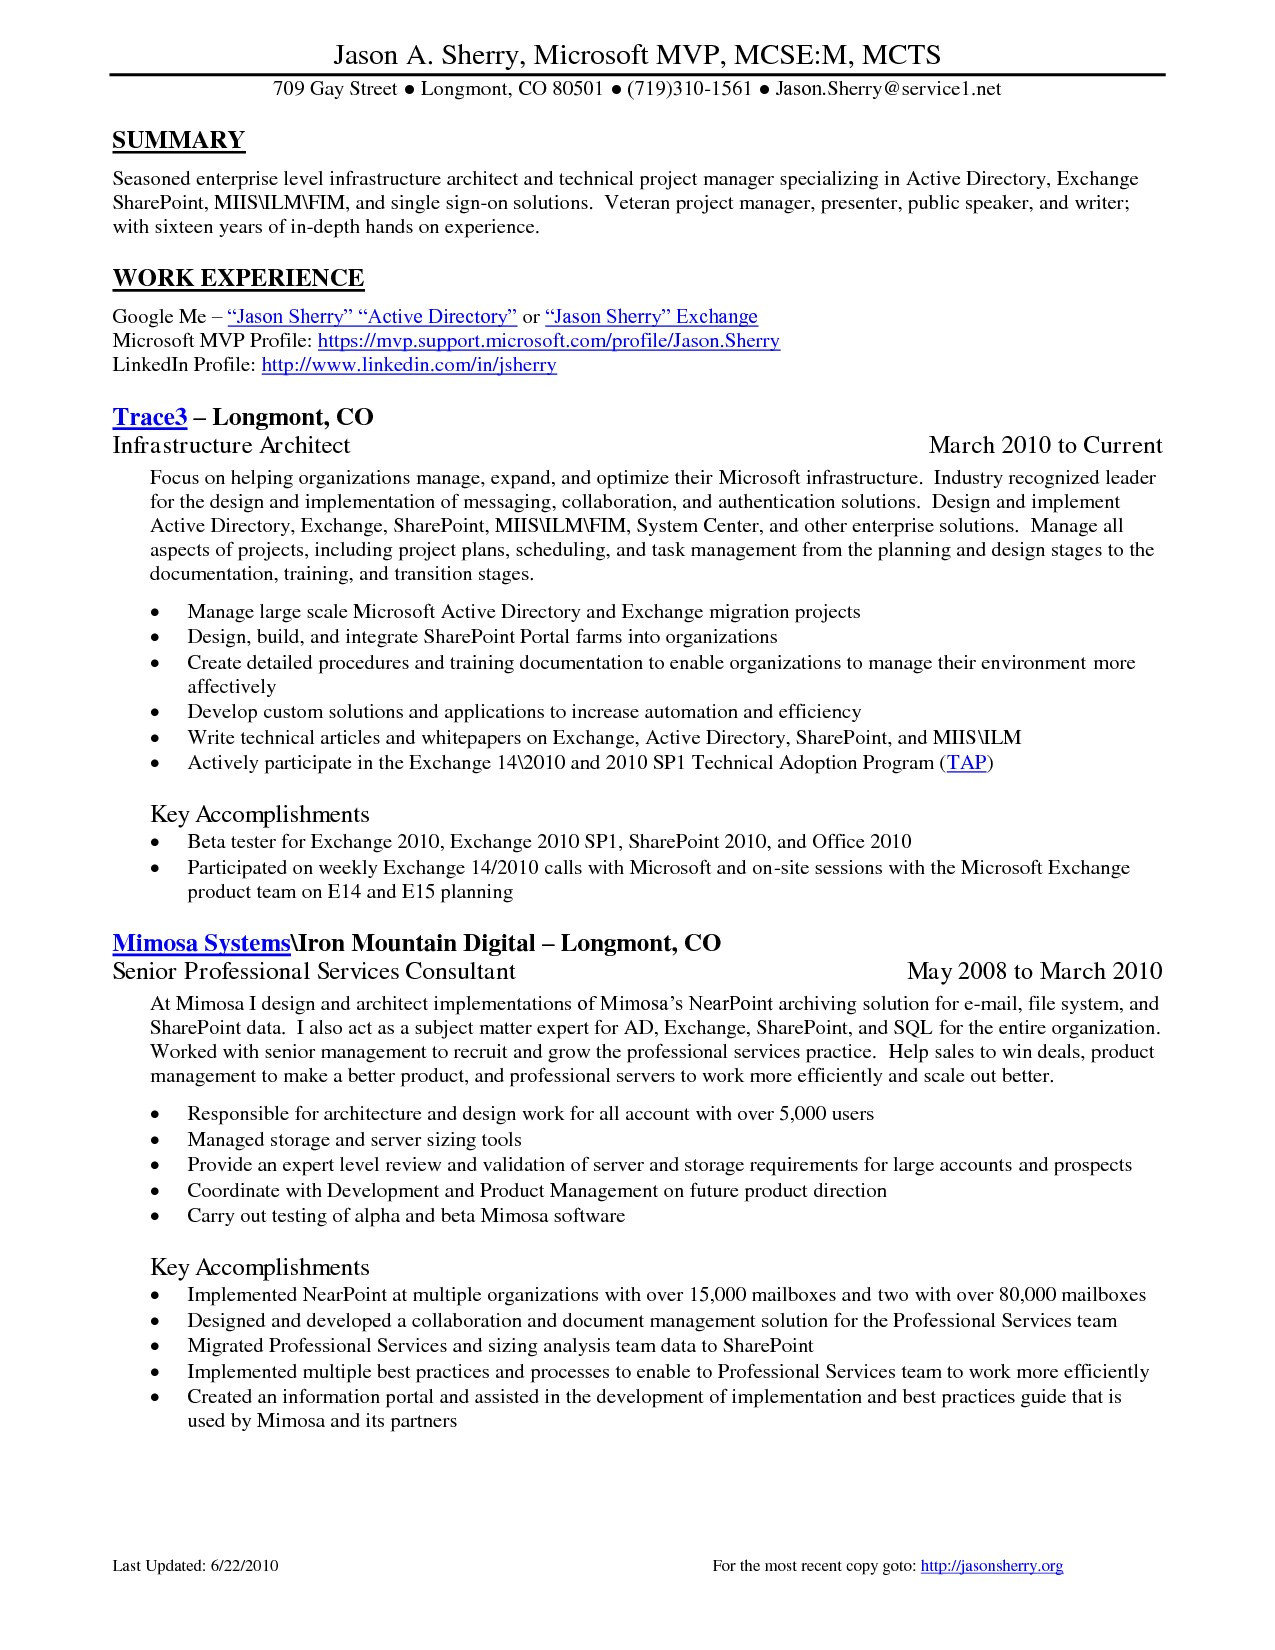 Project Management Resumes - 2018 Project Management Professional Resume Vcuregistry